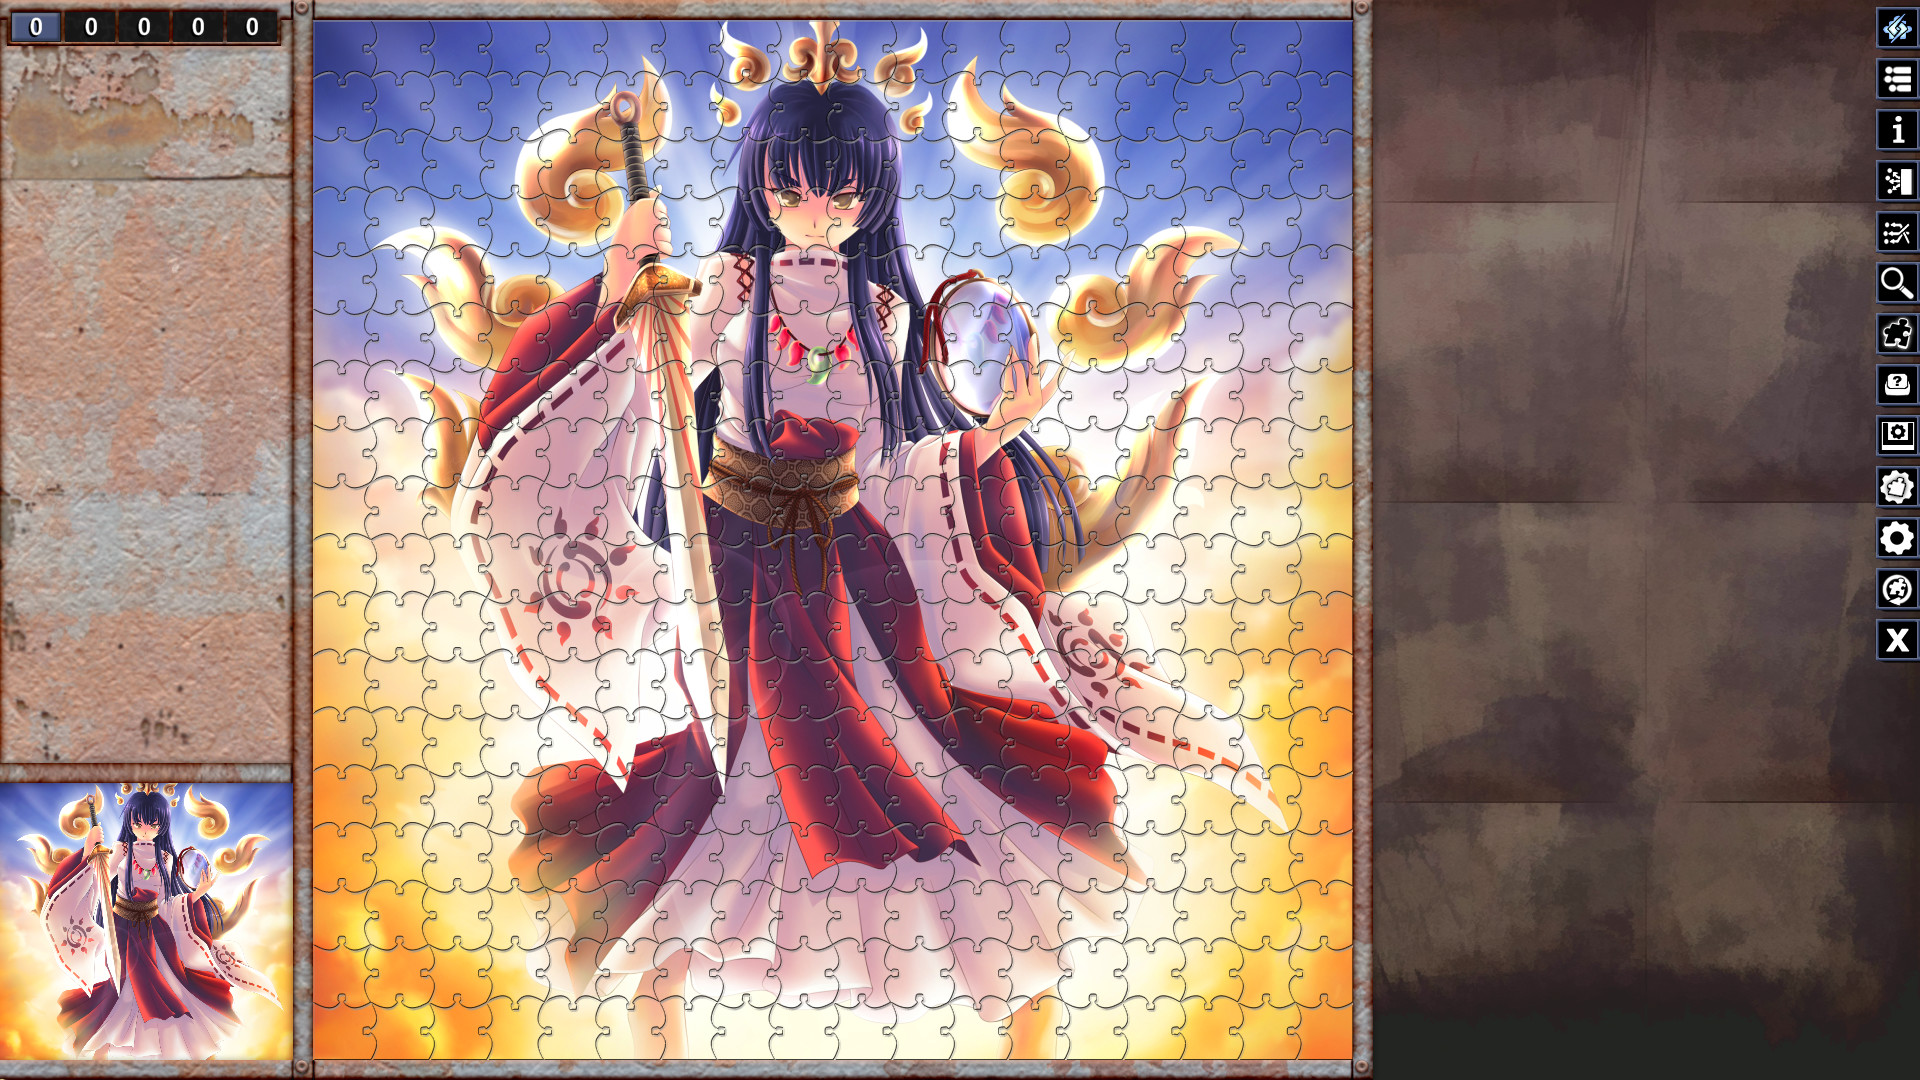 Pixel Puzzles Illustrations & Anime - Jigsaw Pack: Variety Pack 1 screenshot